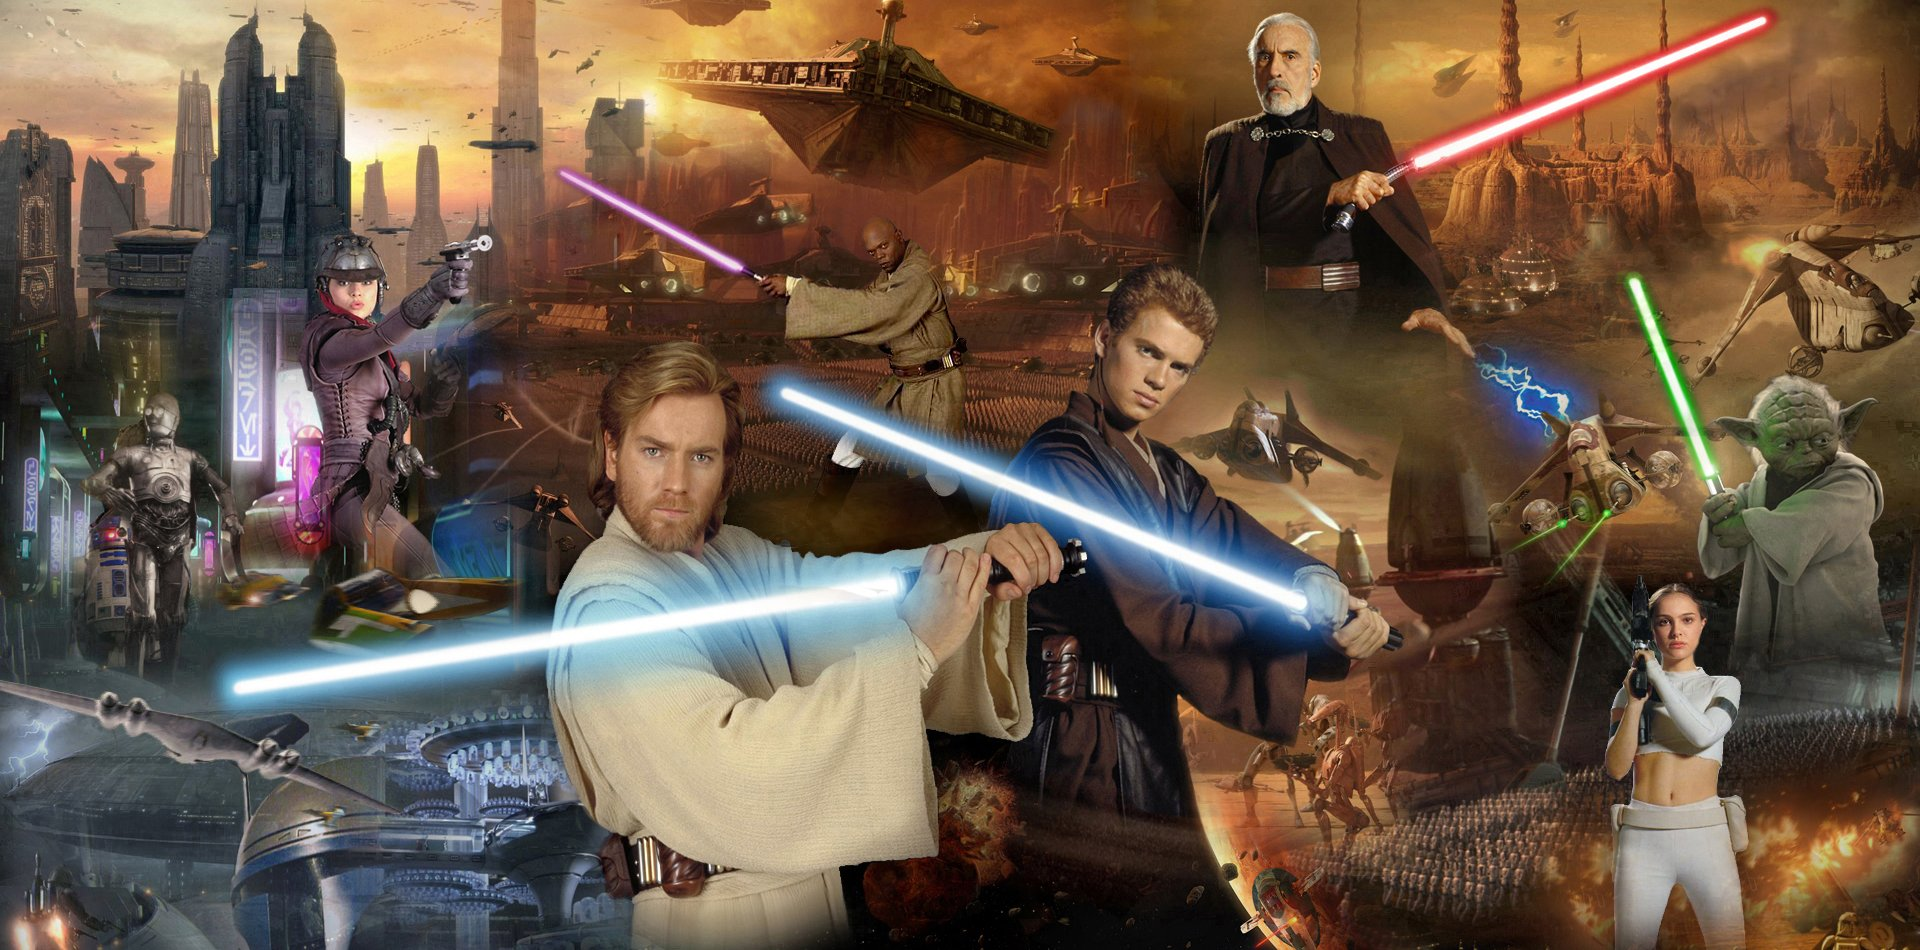 Take 2: Star Wars Episode II - Attack of the Clones feature image